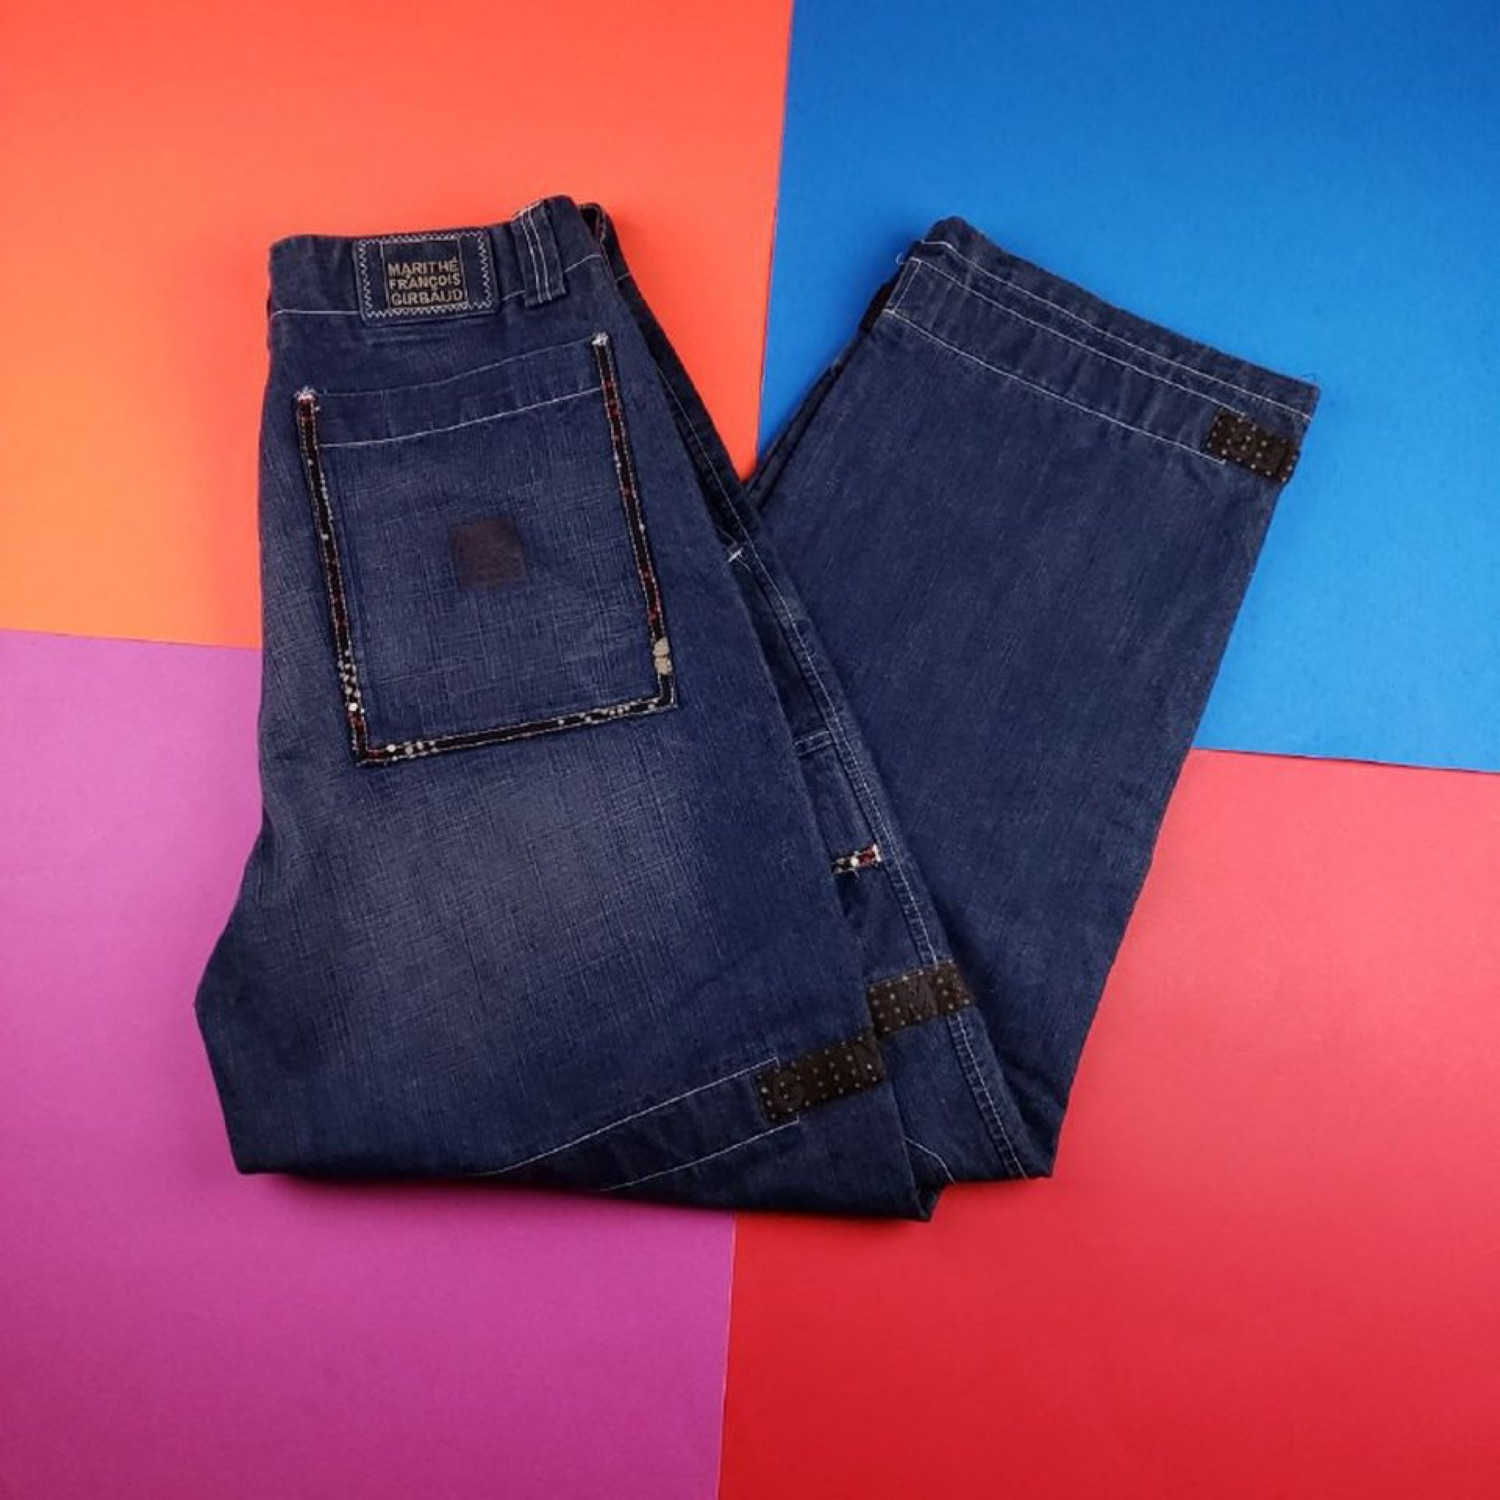 Vintage 90'S Marithe Francis Girbaud Strap Jeans